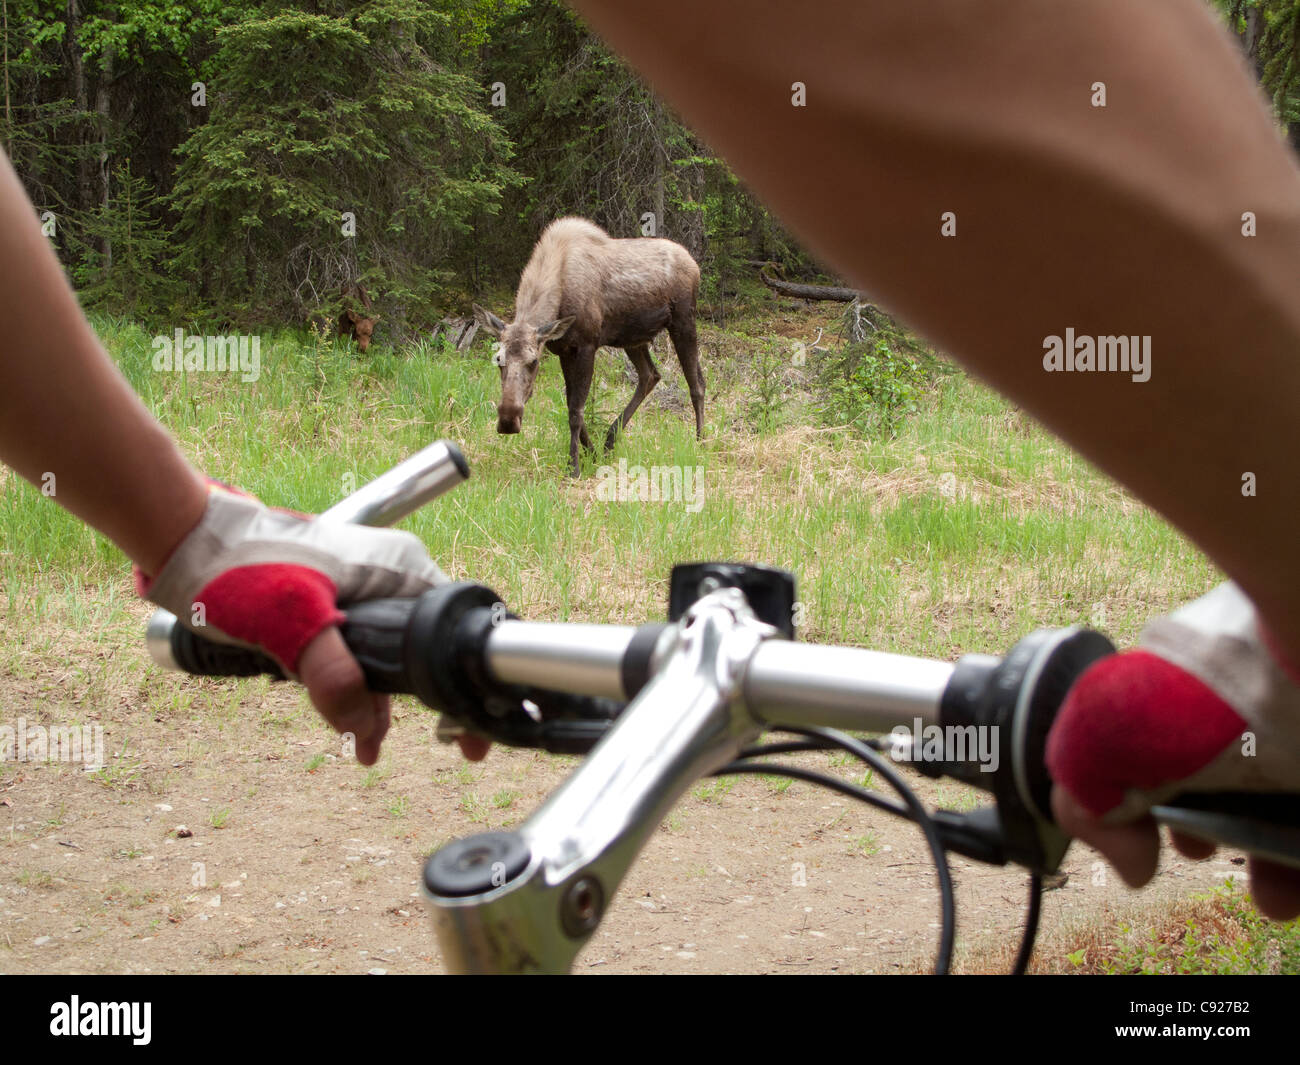 Female mountain bicyclist bikes near a cow and calf moose in Far North Bicentennial Park Anchorage, Southcentral - Stock Image